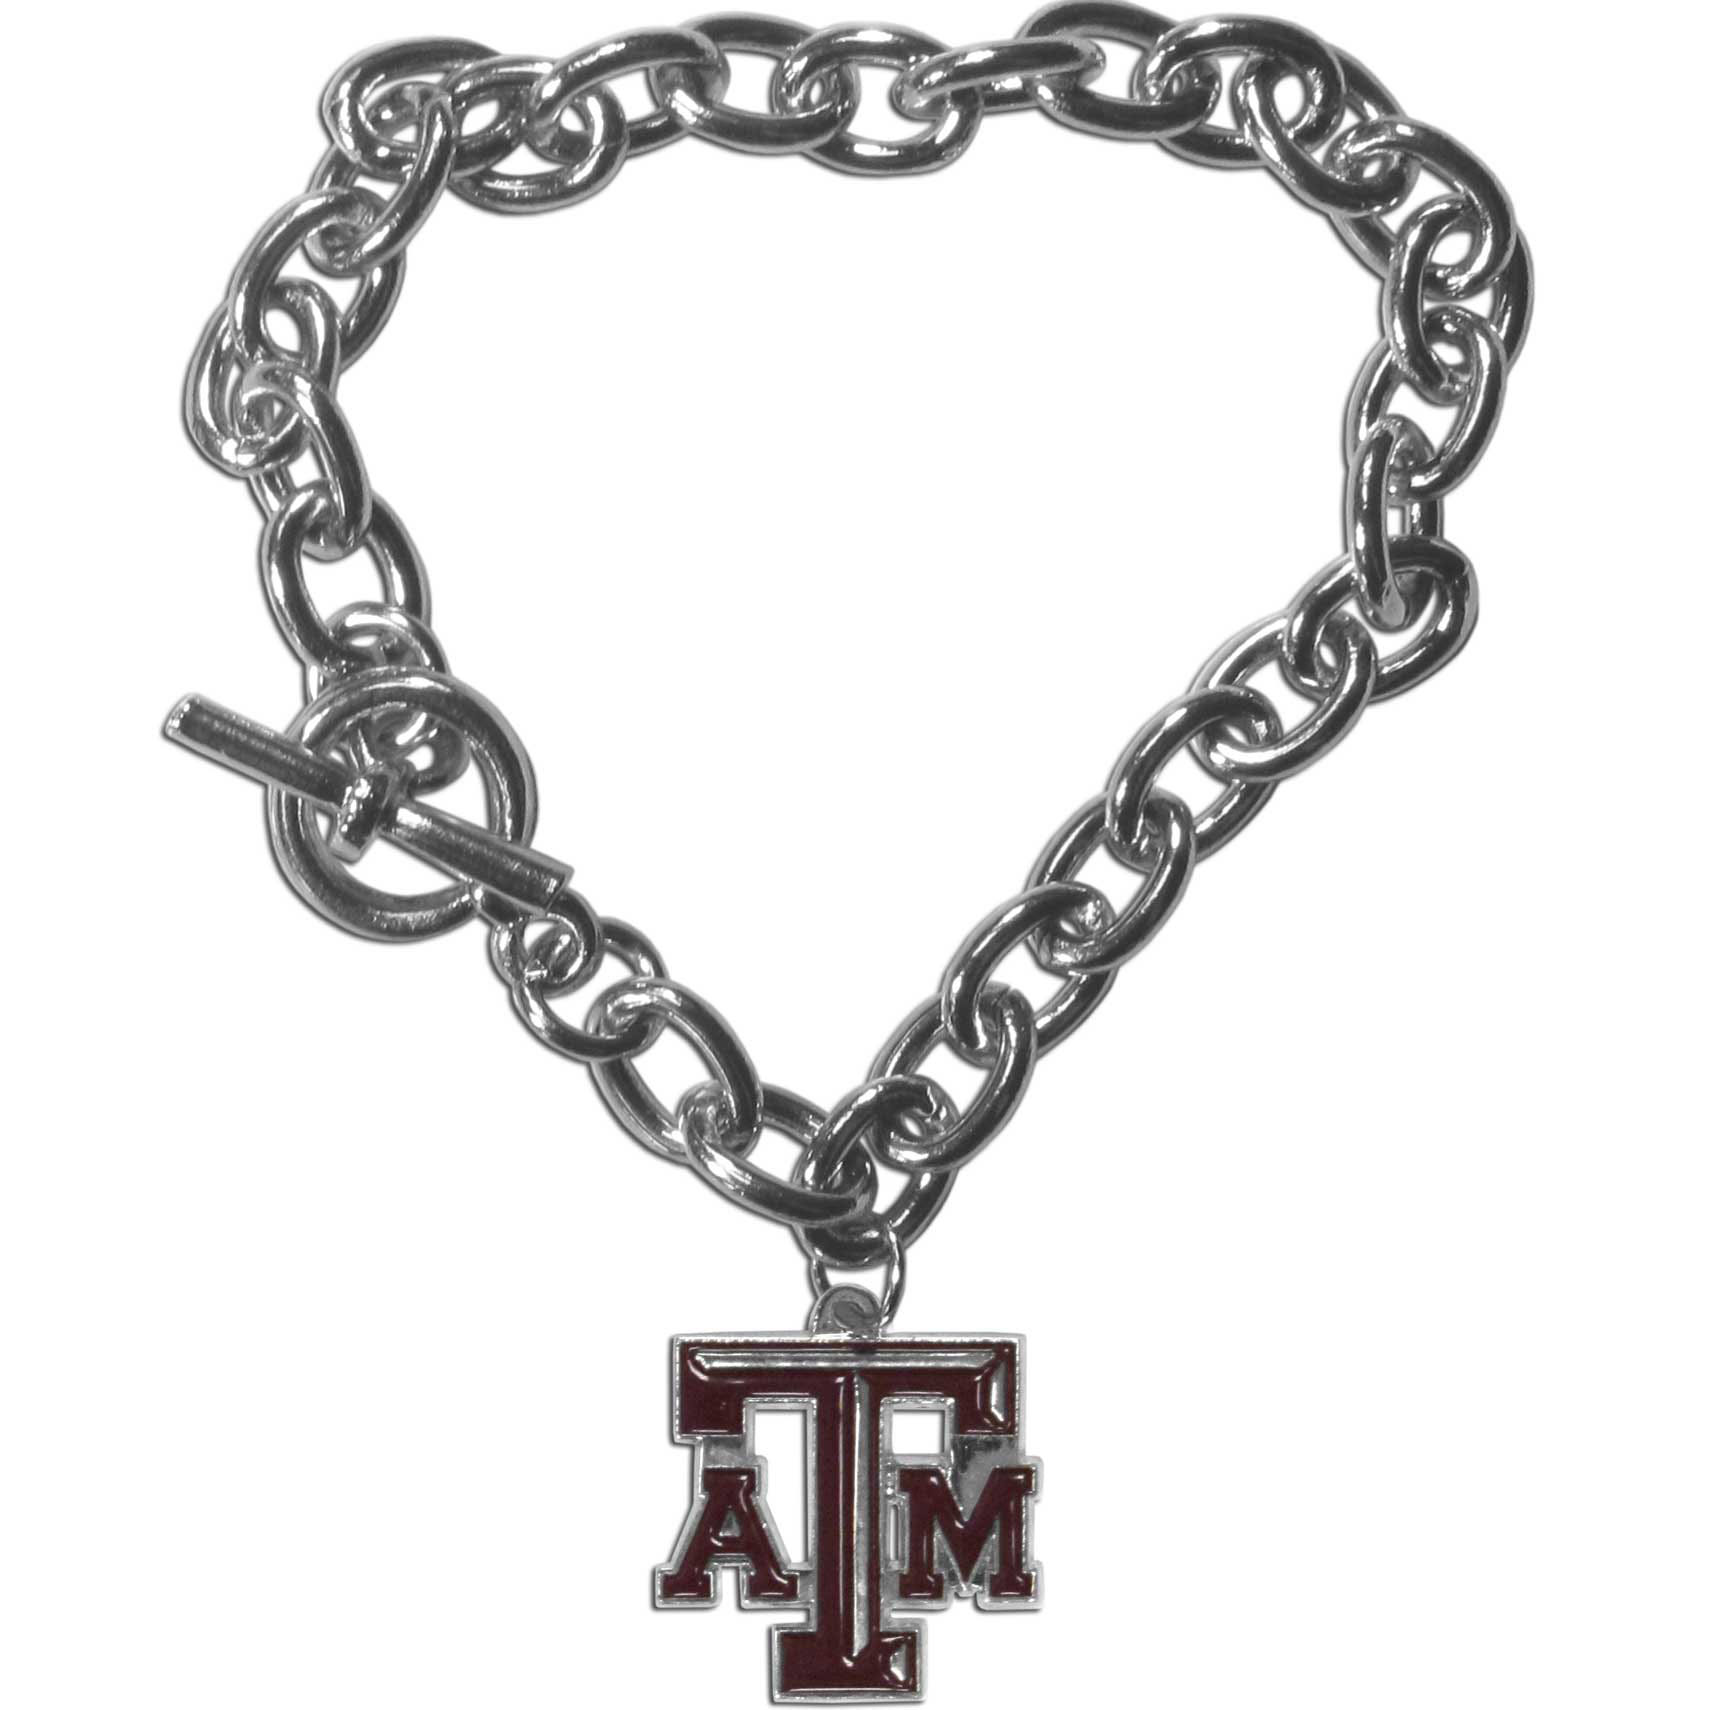 Texas A and M Aggies Charm Chain Bracelet - Our classic single charm bracelet is a great way to show off your team pride! The 7.5 inch large link chain features a high polish Texas A & M Aggies charm and features a toggle clasp which makes it super easy to take on and off.